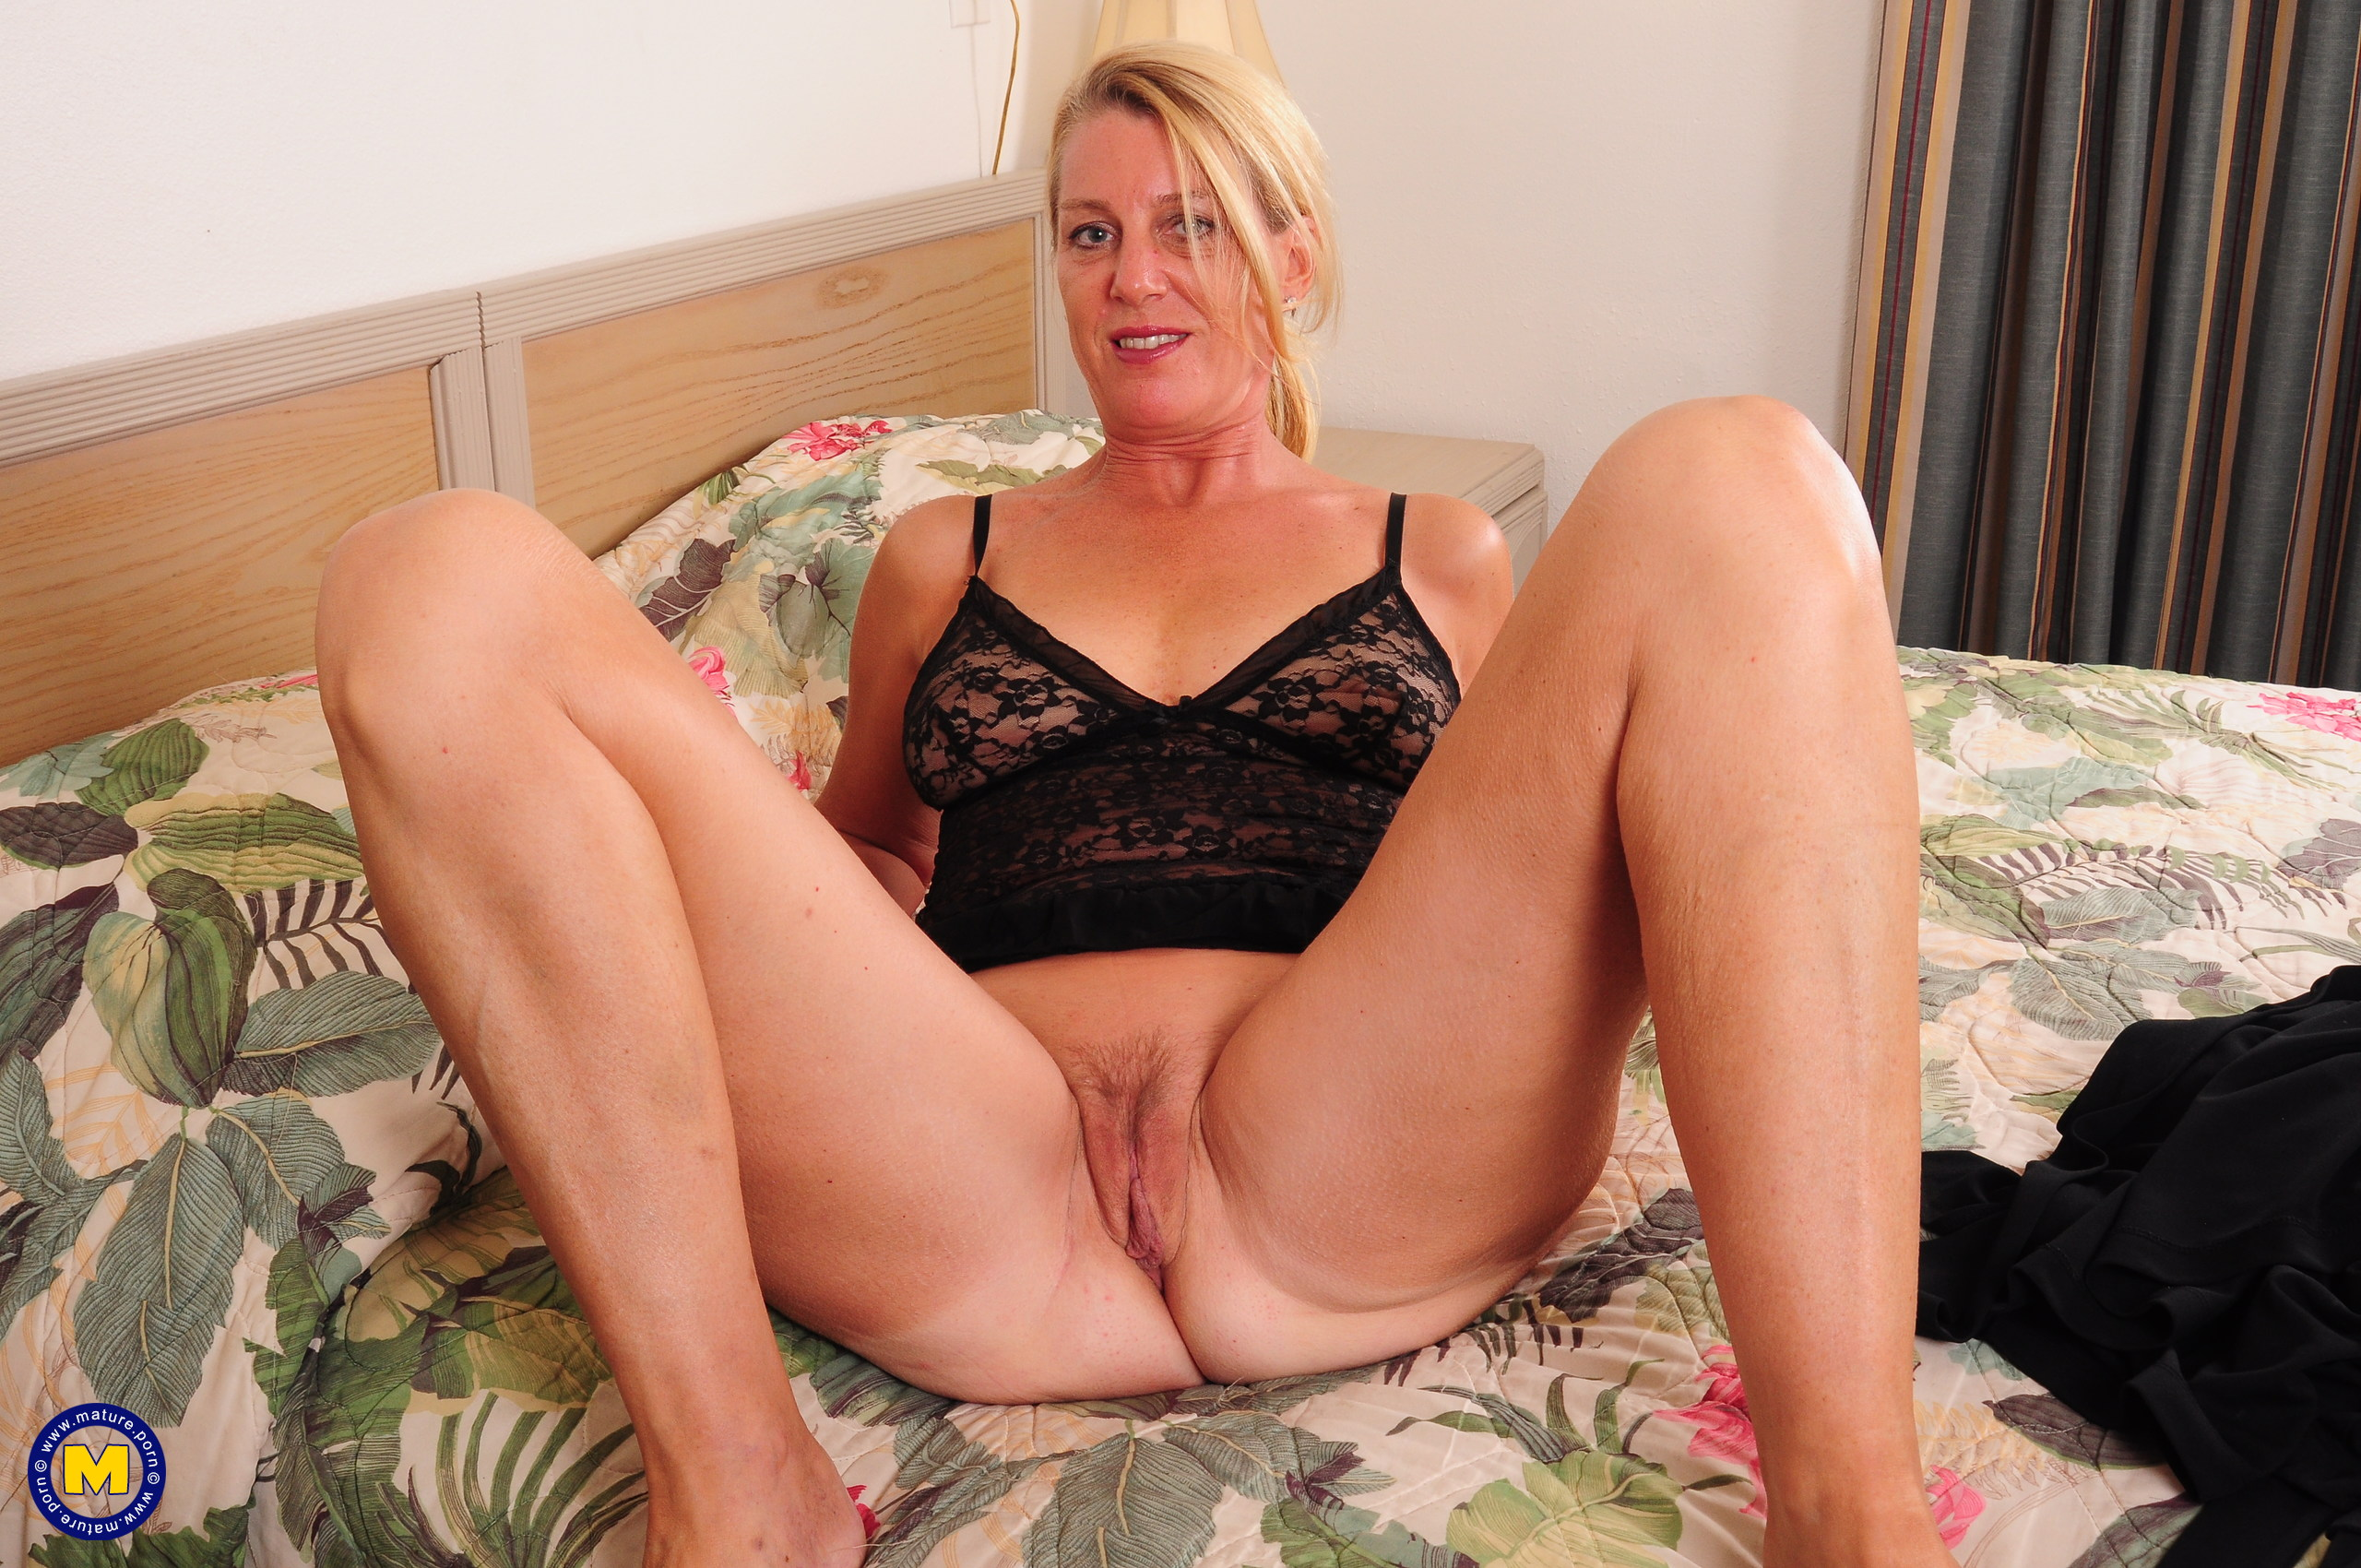 mature exhibitionist wife comes home from work and plays with her